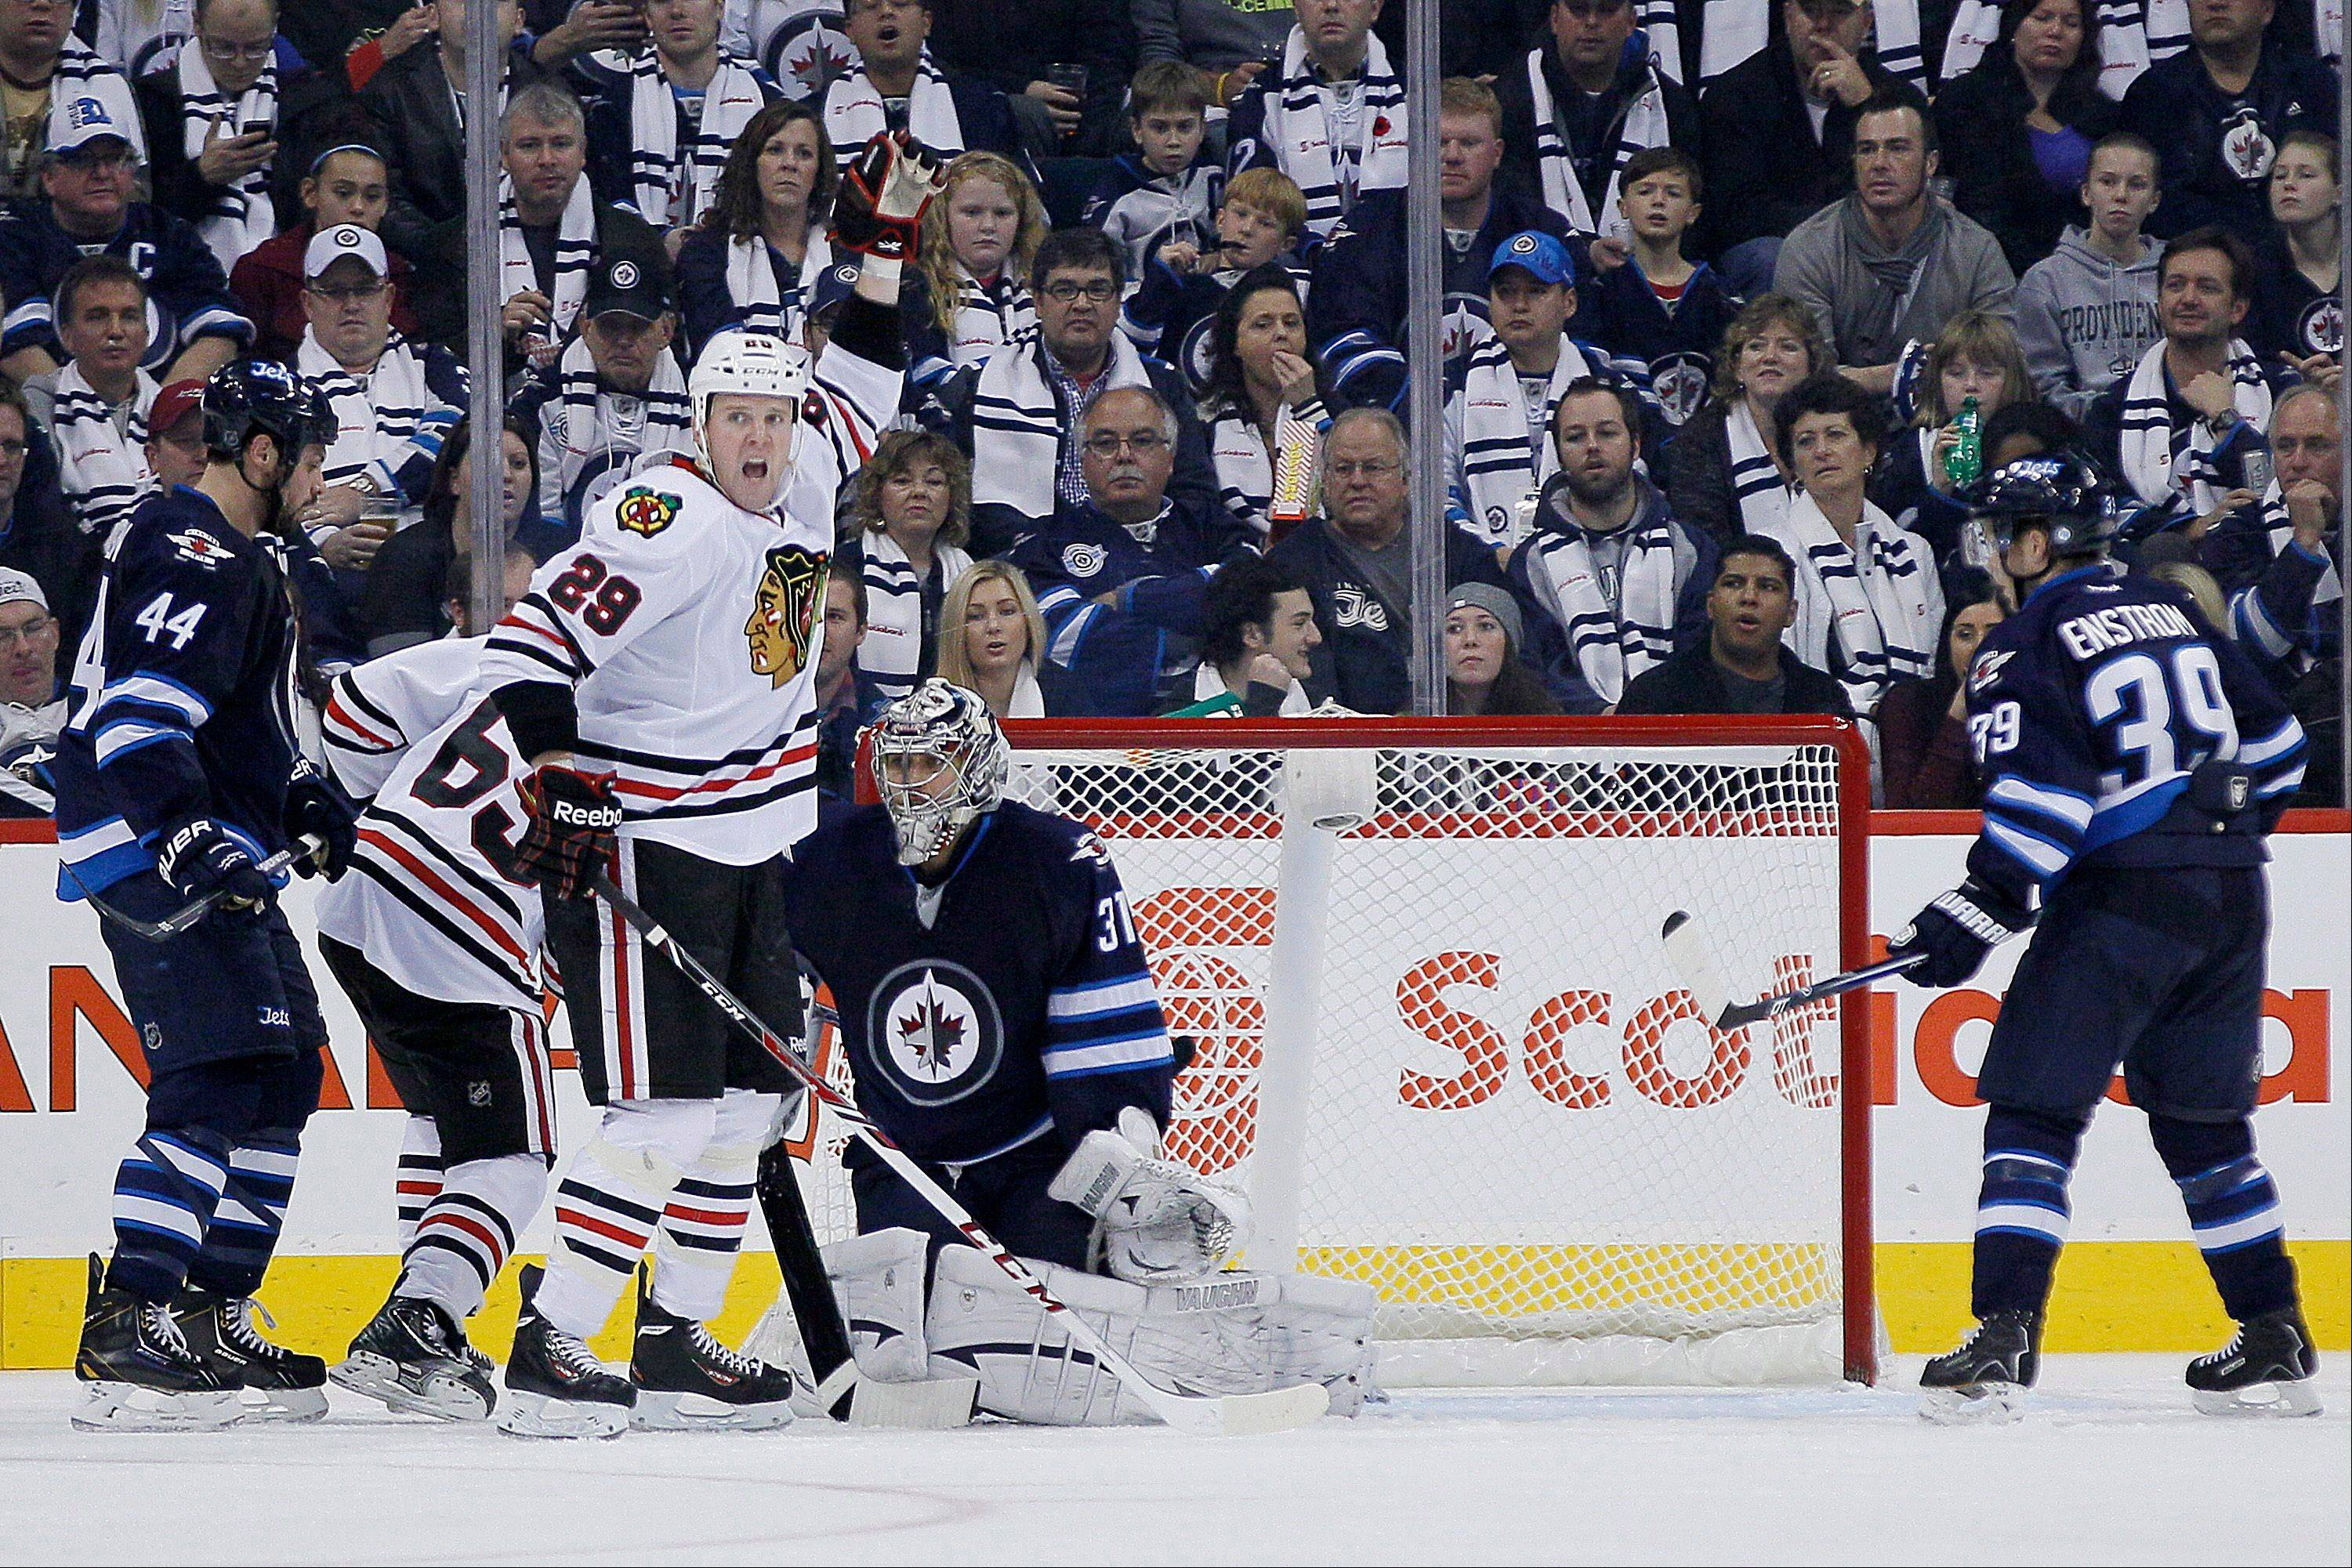 Bryan Bickell (29) celebrates Nick Leddy's (8) goal against the Winnipeg Jets during the second period of the Blackhawks' victory in Winnipeg, Manitoba, Saturday, Nov. 2, 2013.